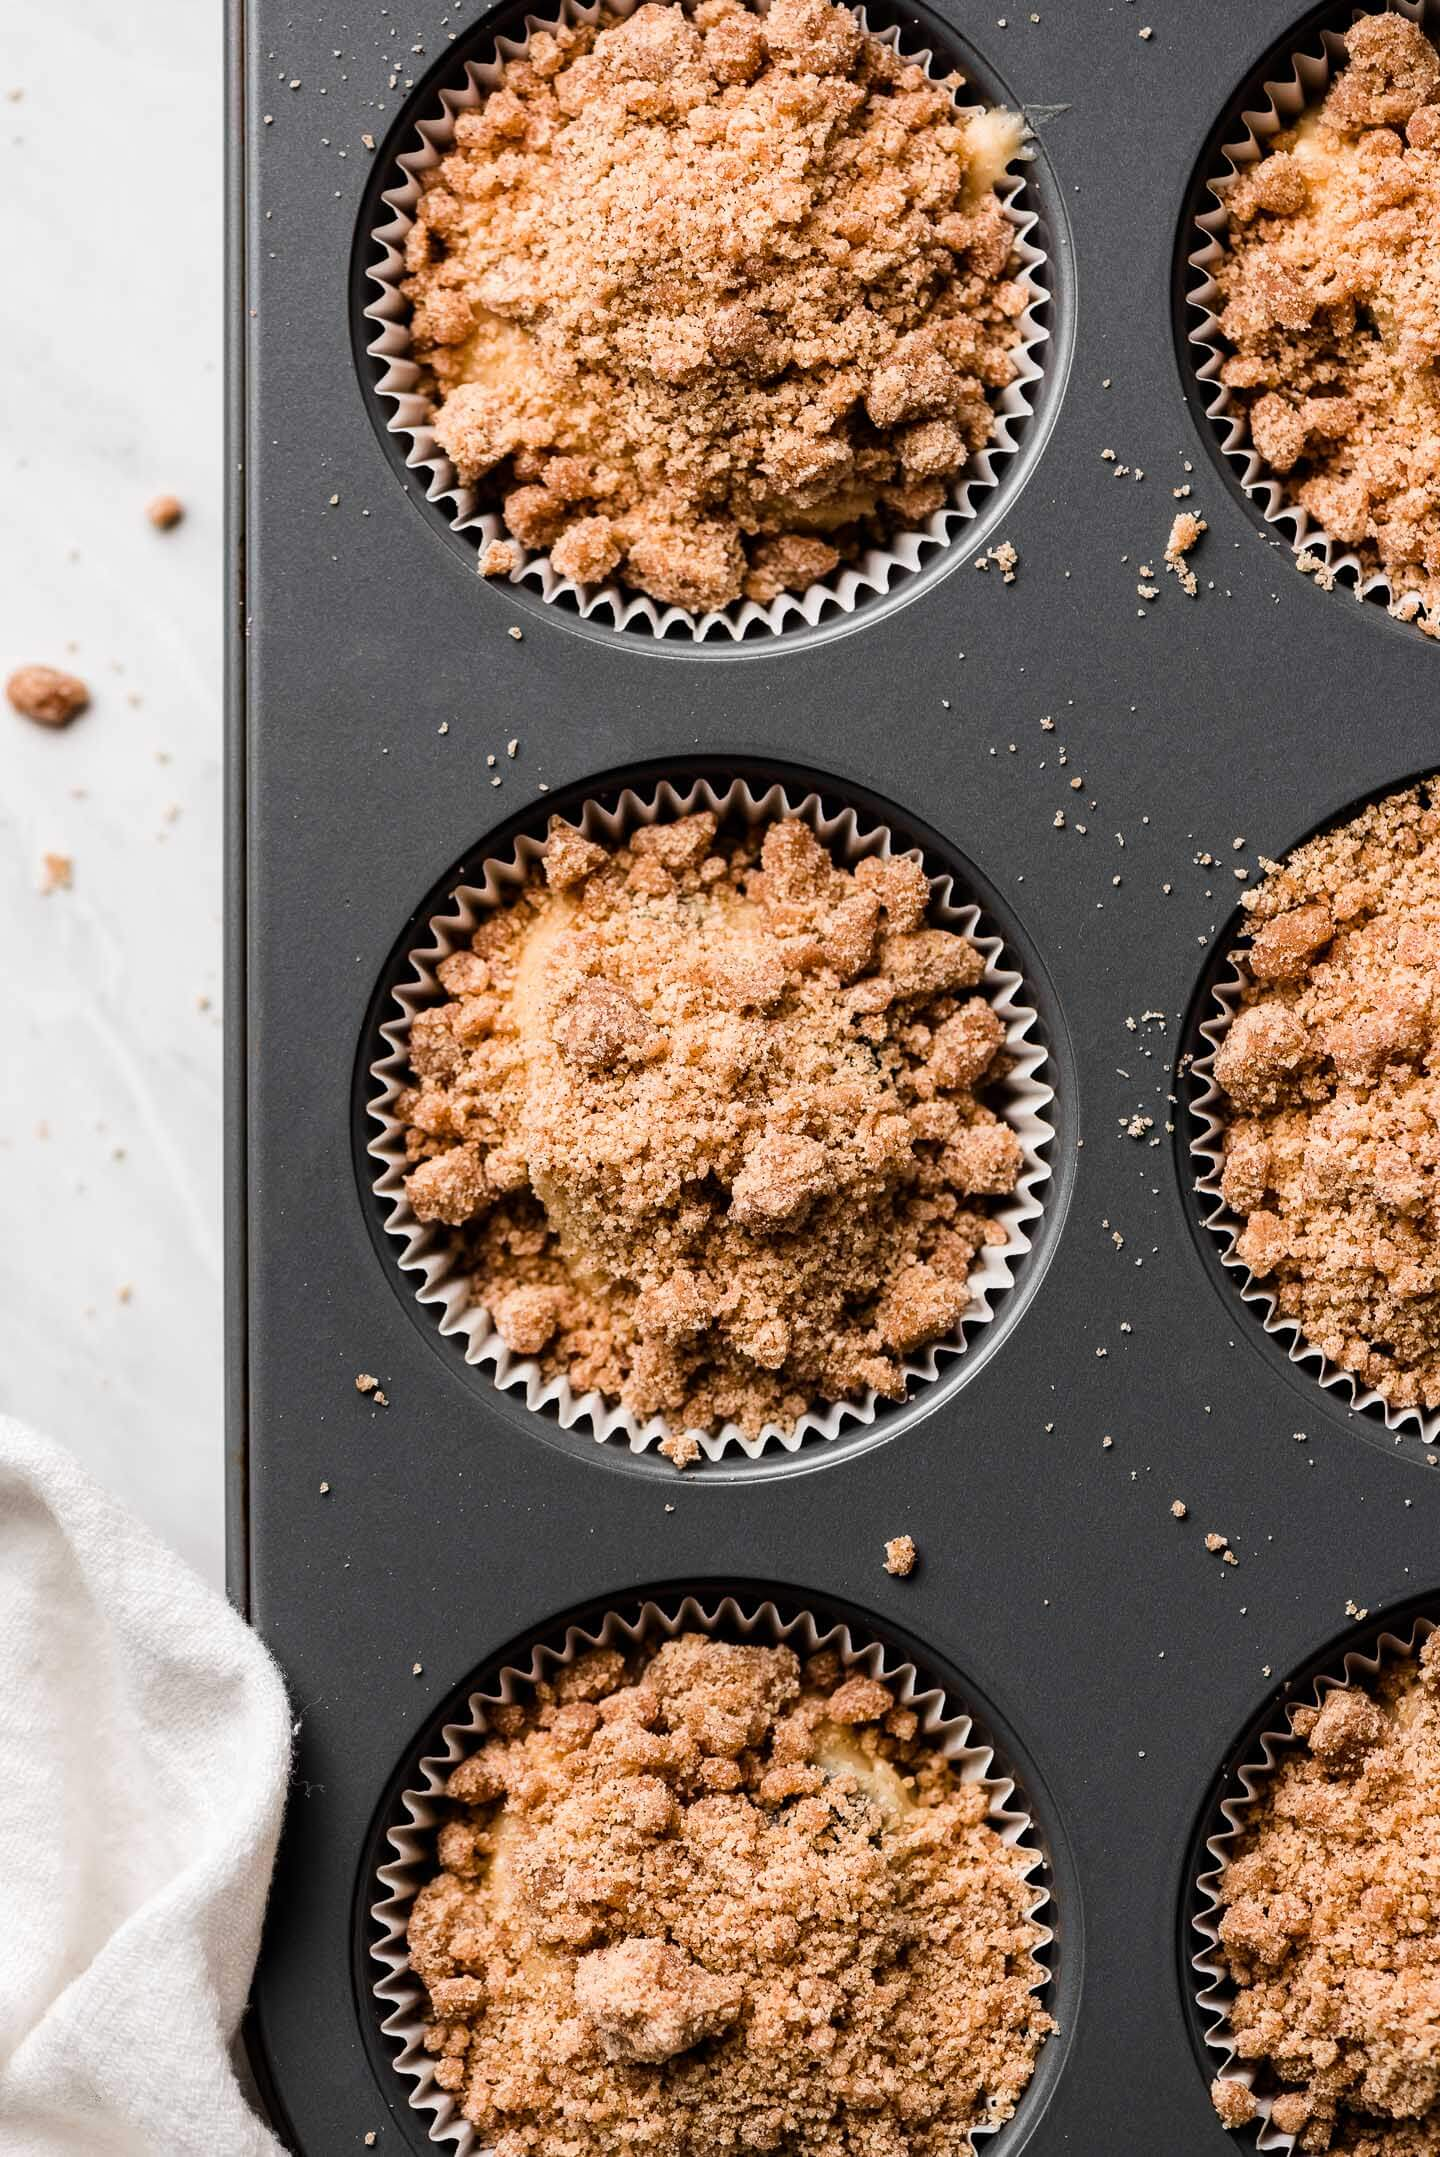 A muffin tin with paper liners filled with batter and topped with streusel.